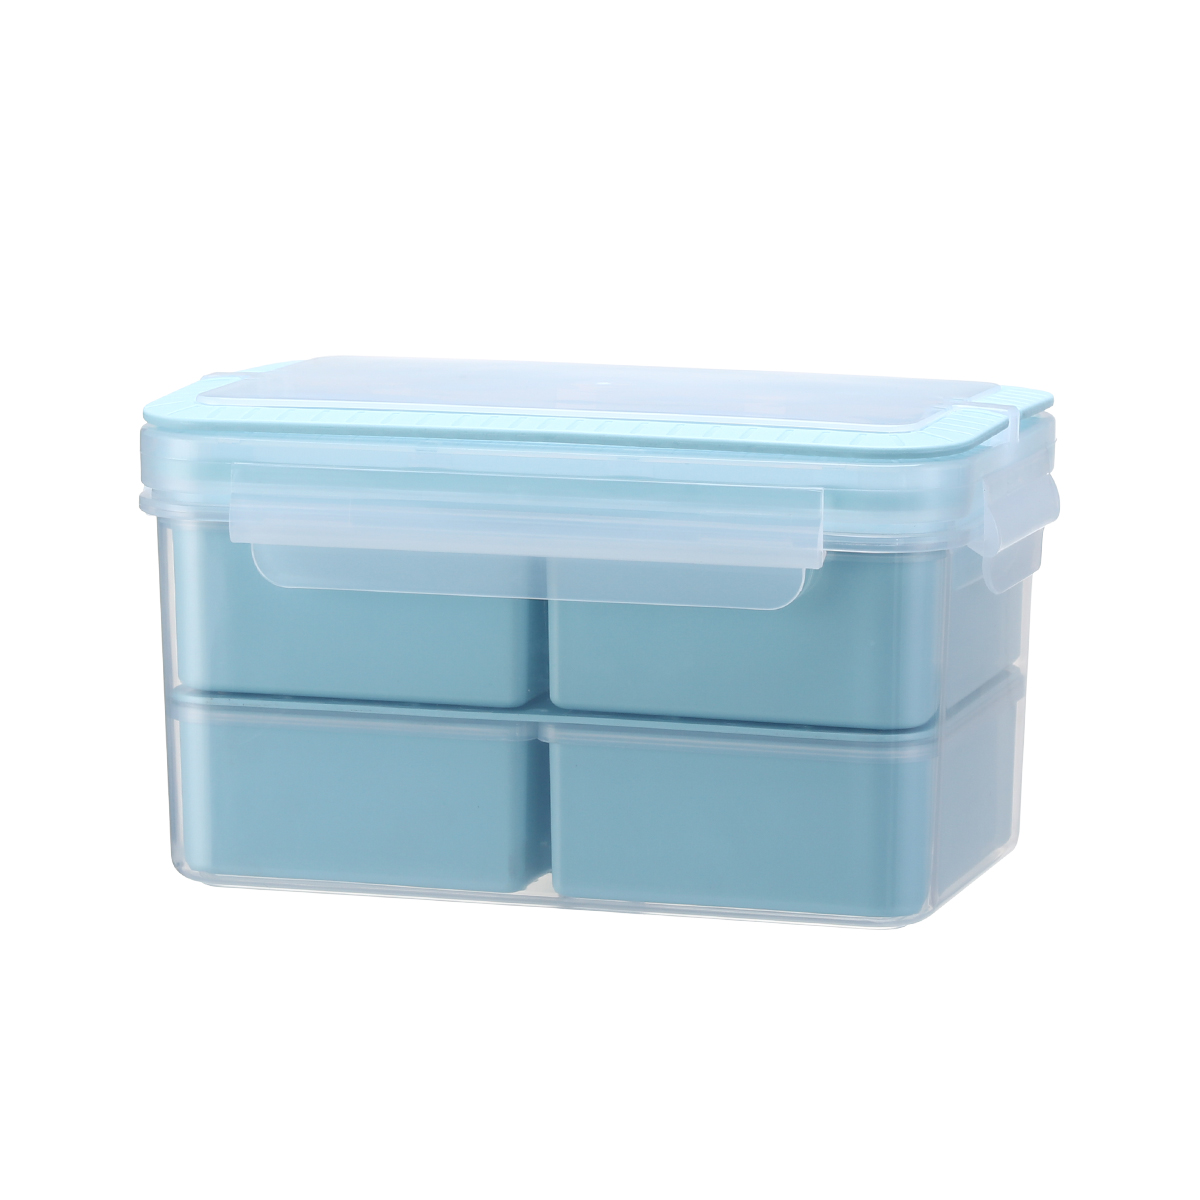 4 compartment lunch box, lunch box BPA free plastic